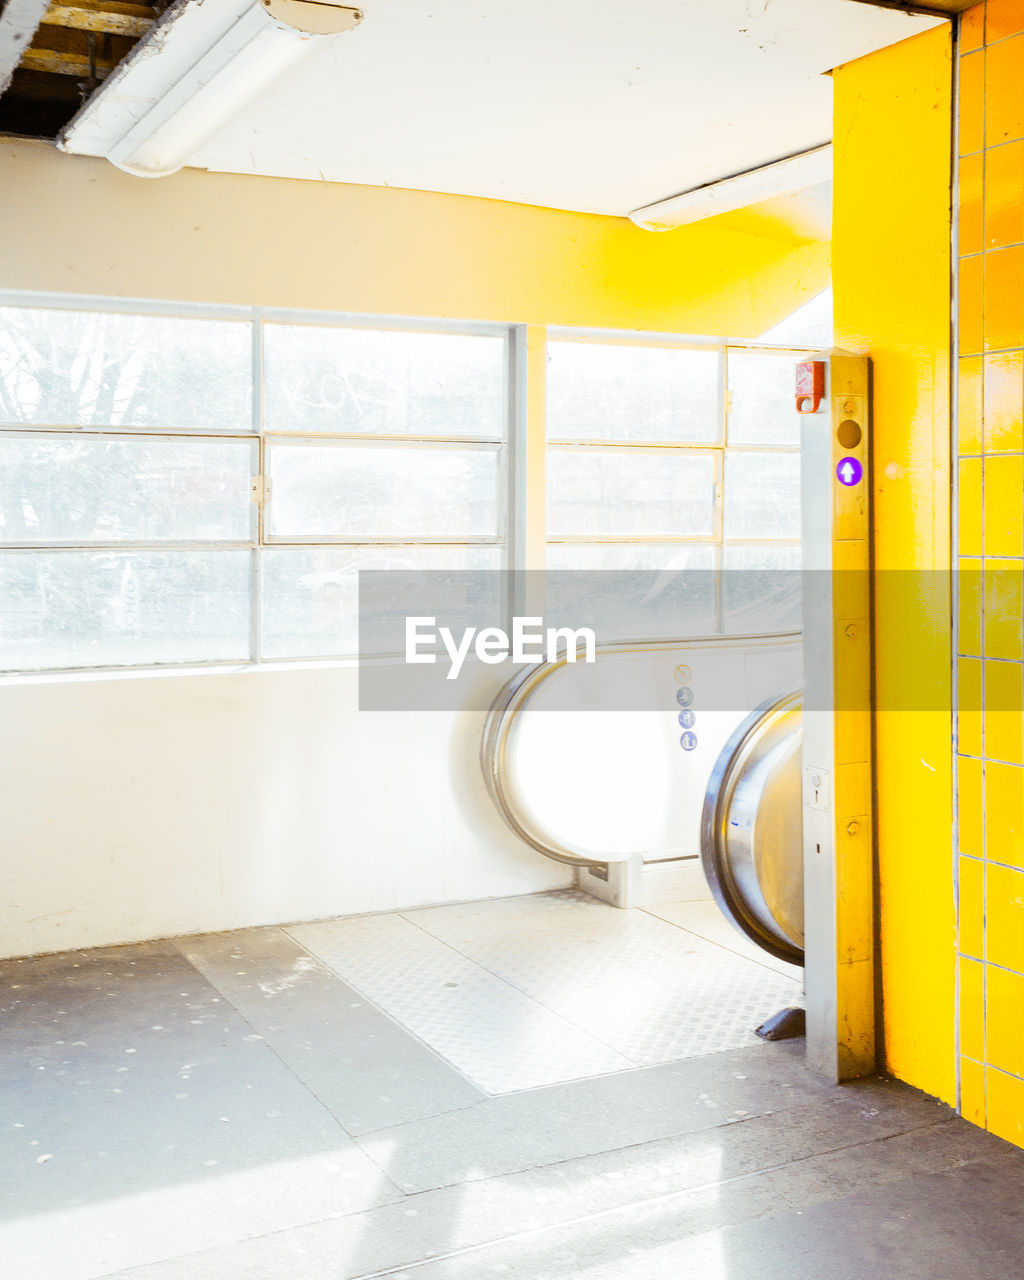 indoors, yellow, no people, flooring, door, sunlight, absence, day, architecture, window, entrance, tile, bathroom, domestic room, tiled floor, wall - building feature, built structure, hygiene, building, clean